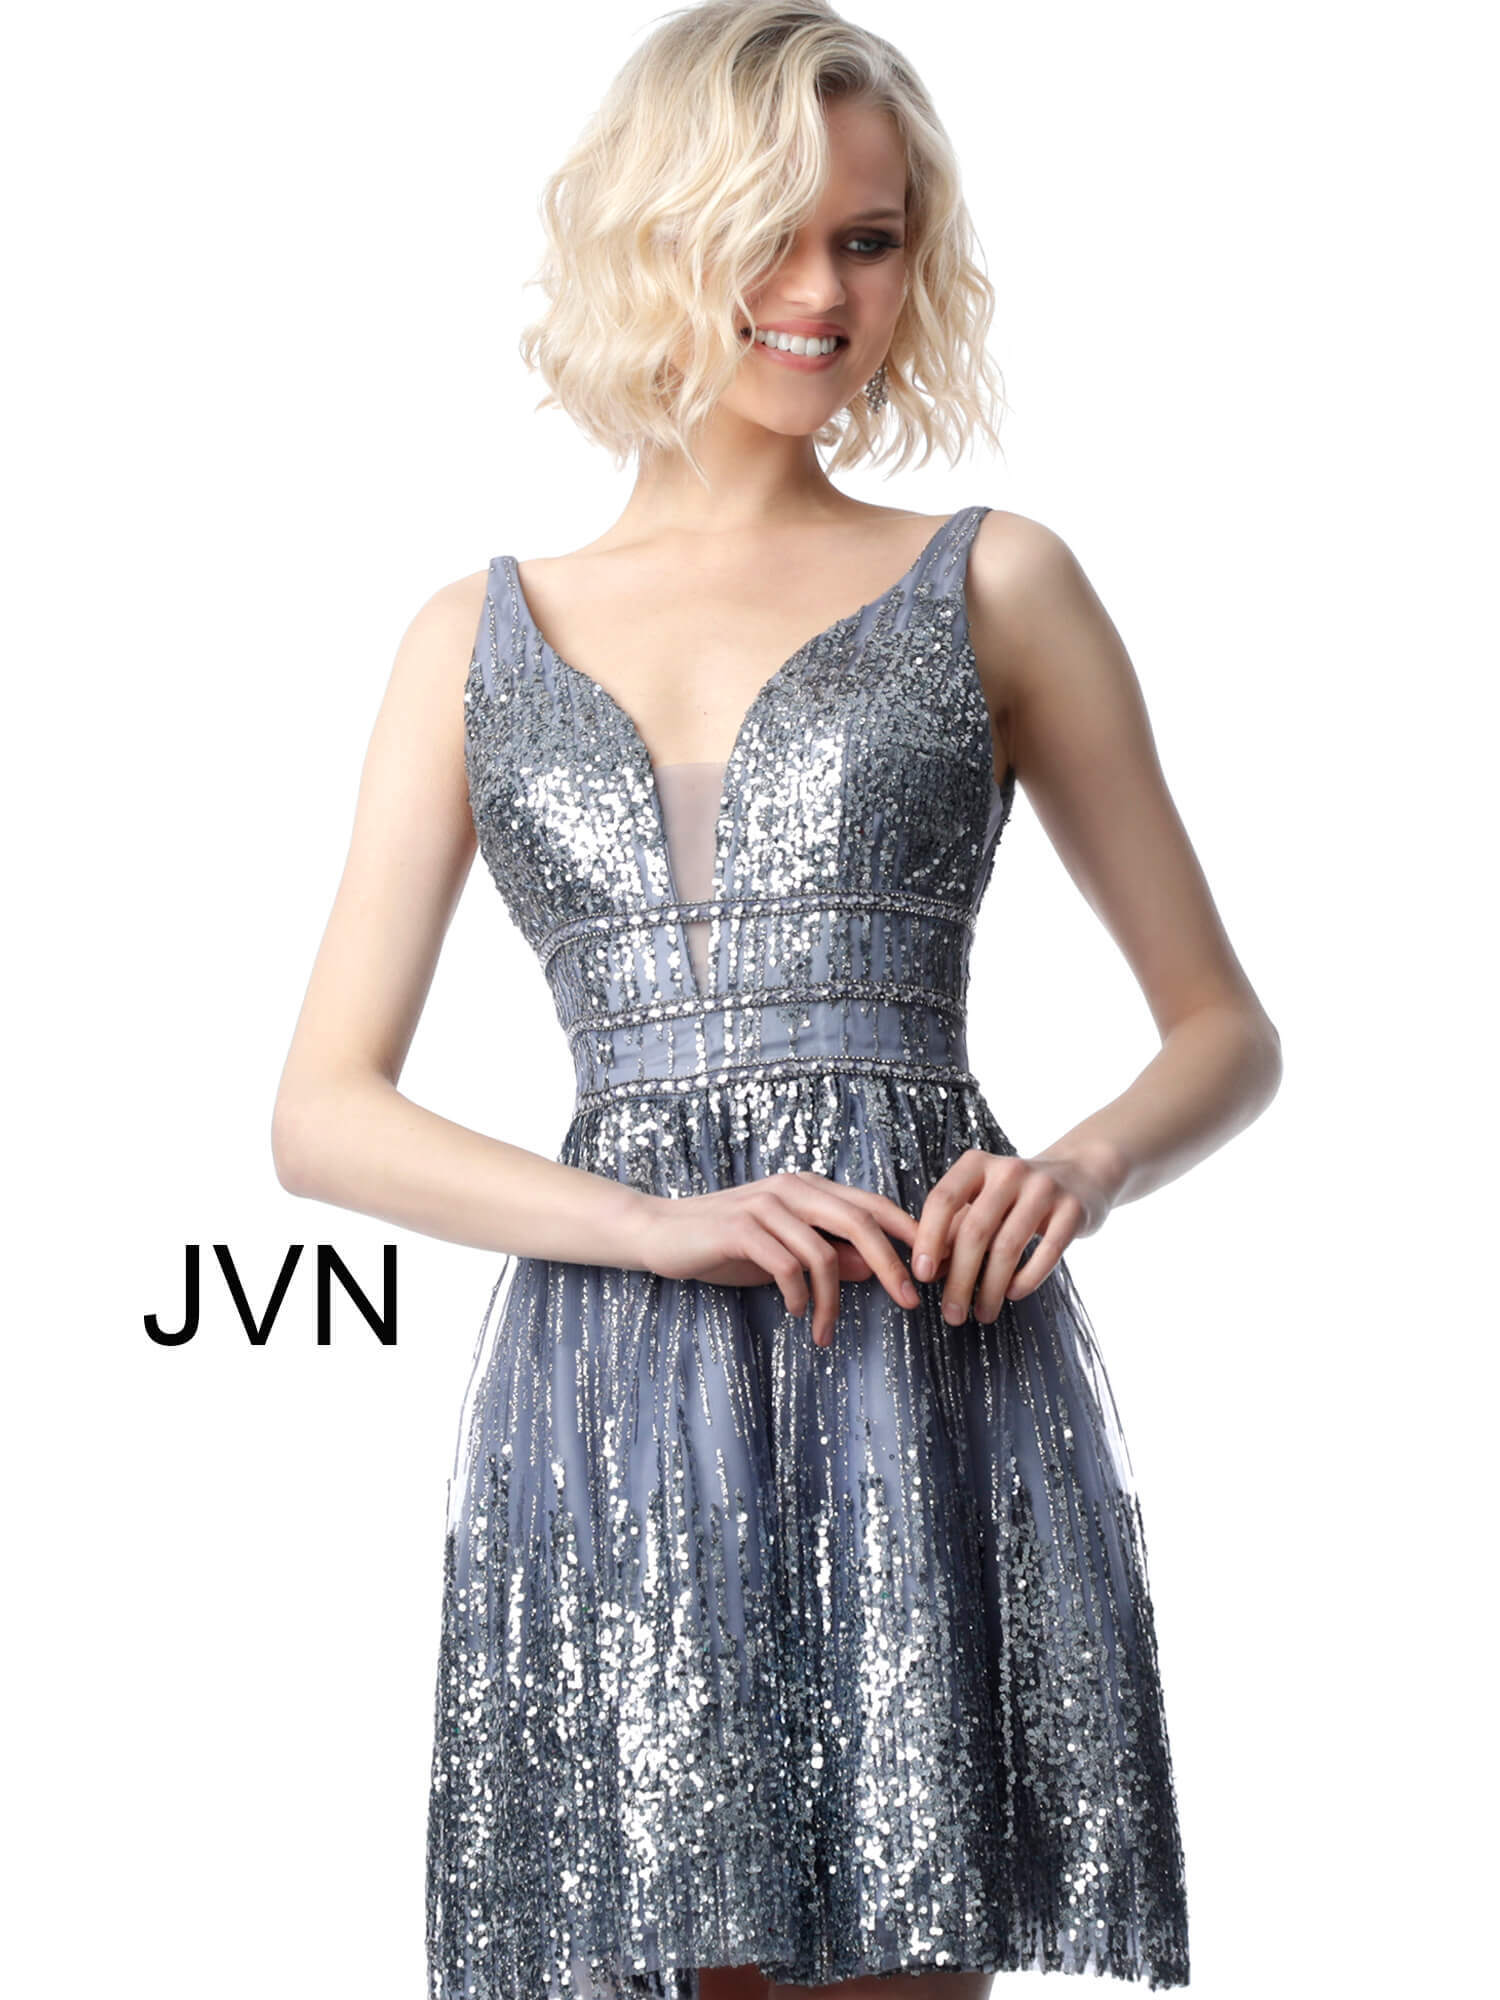 ed86b7b8cd Grey short fit and flare glitter fabric plunging neckline cocktail dress  jvn4762.